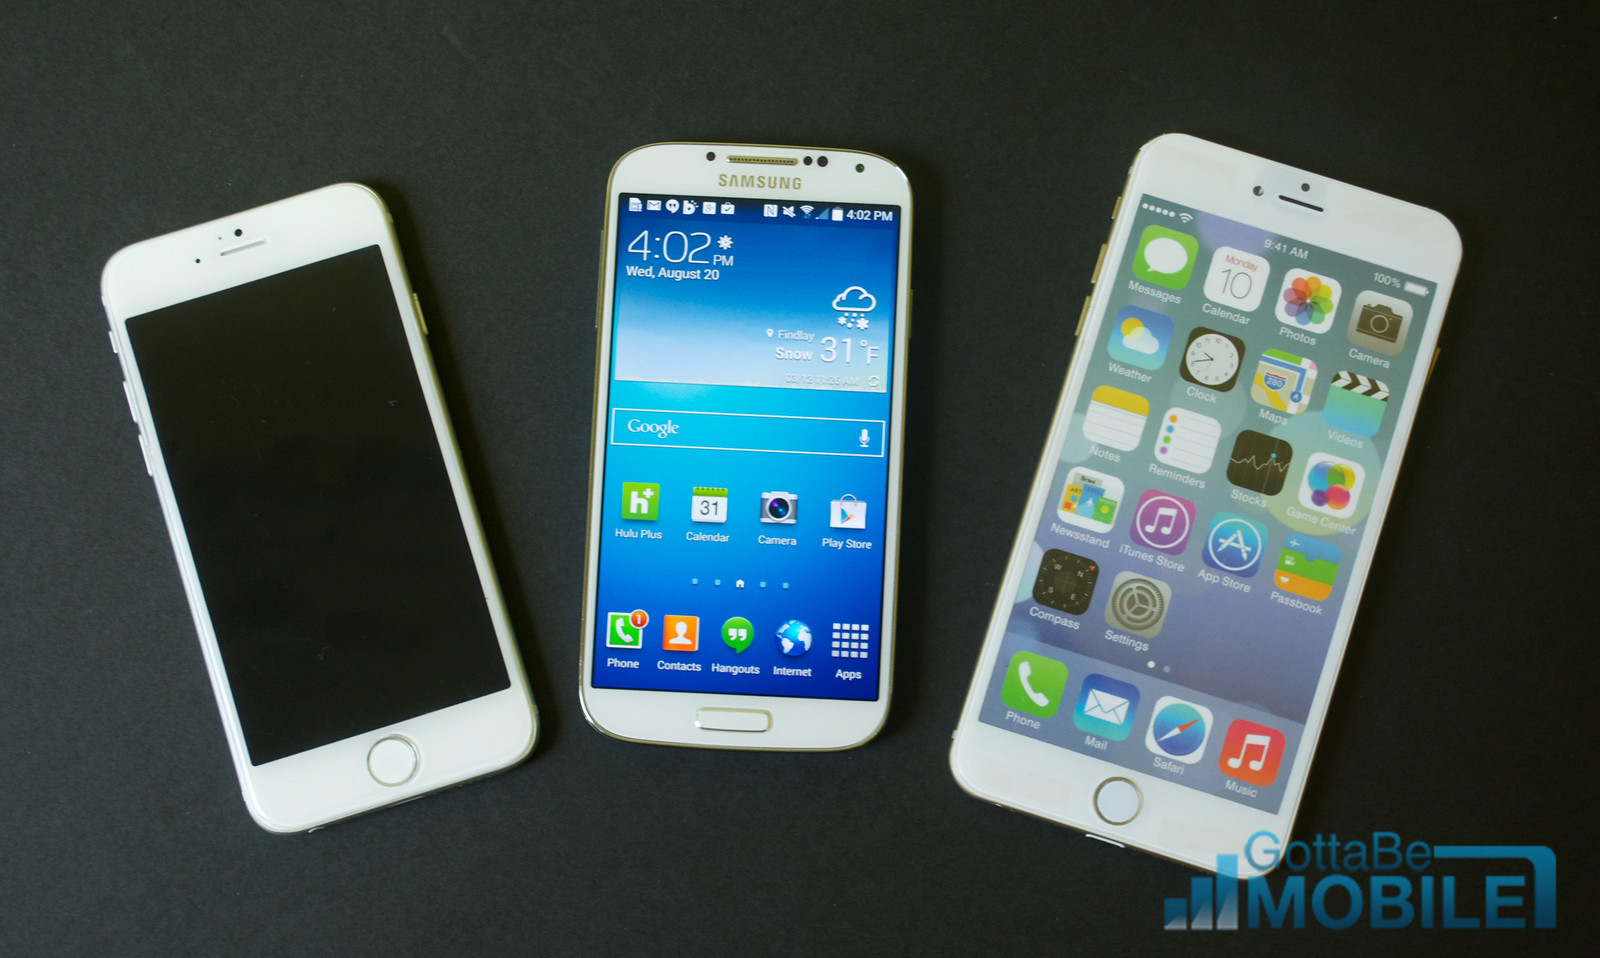 a comparison of the features of iphone 5 and samsung galaxy s 4 Judging by our previous photo comparison of the iphone 5 and galaxy s4, in 100 per cent optimal conditions the samsung phone should be able to capture more detail let's see if it actually does.